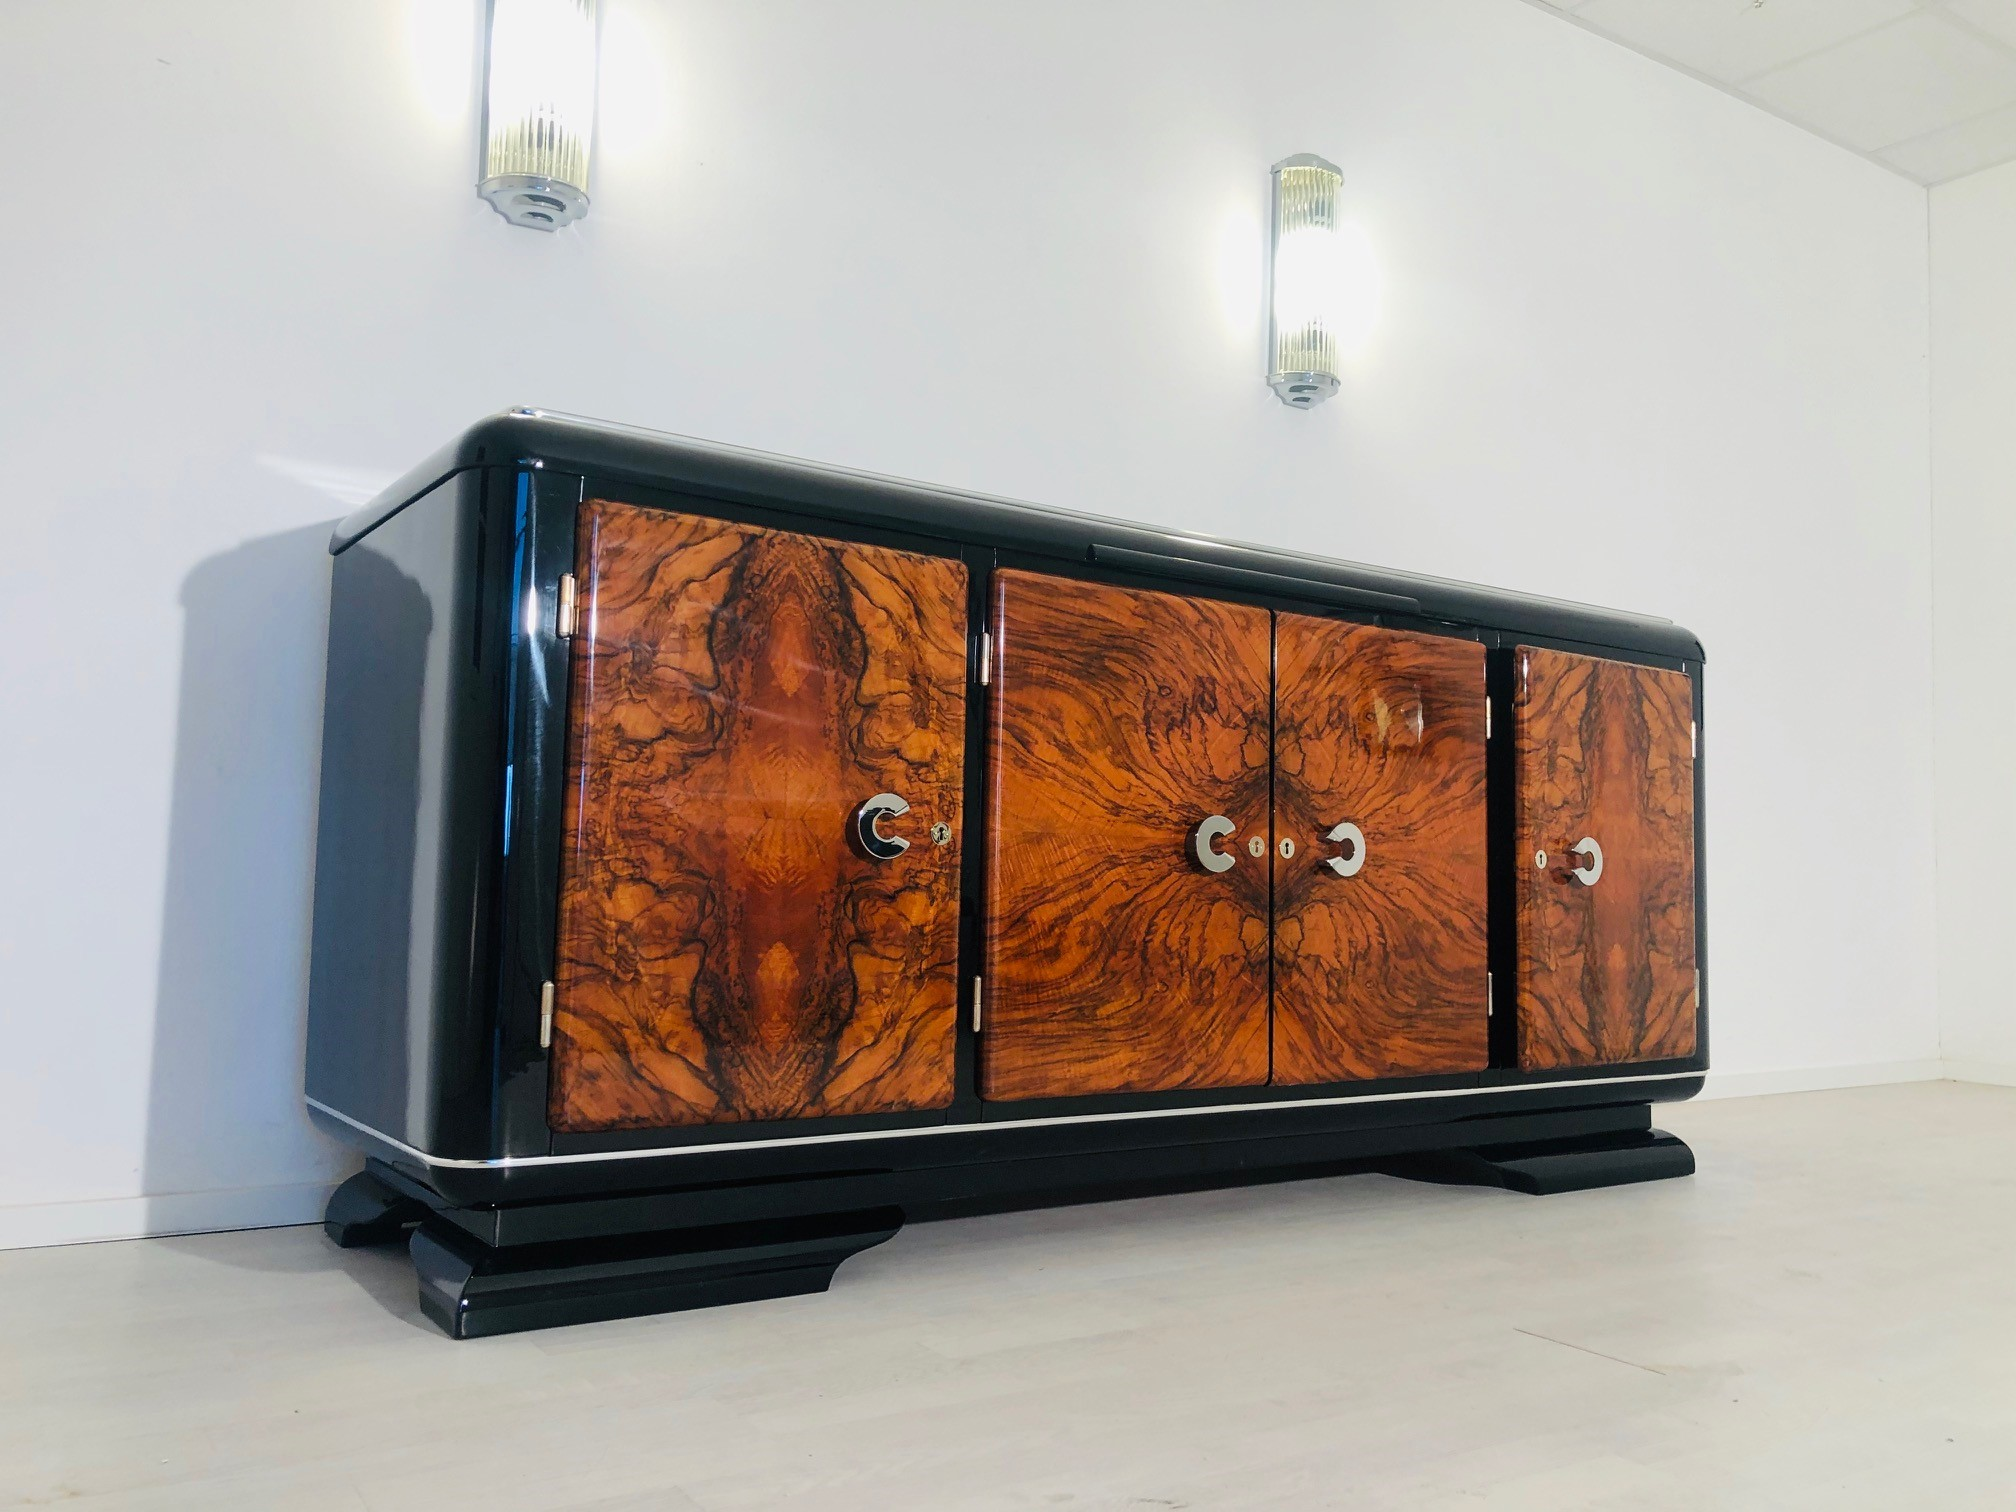 Original Art Deco Sideboard from France 1920s